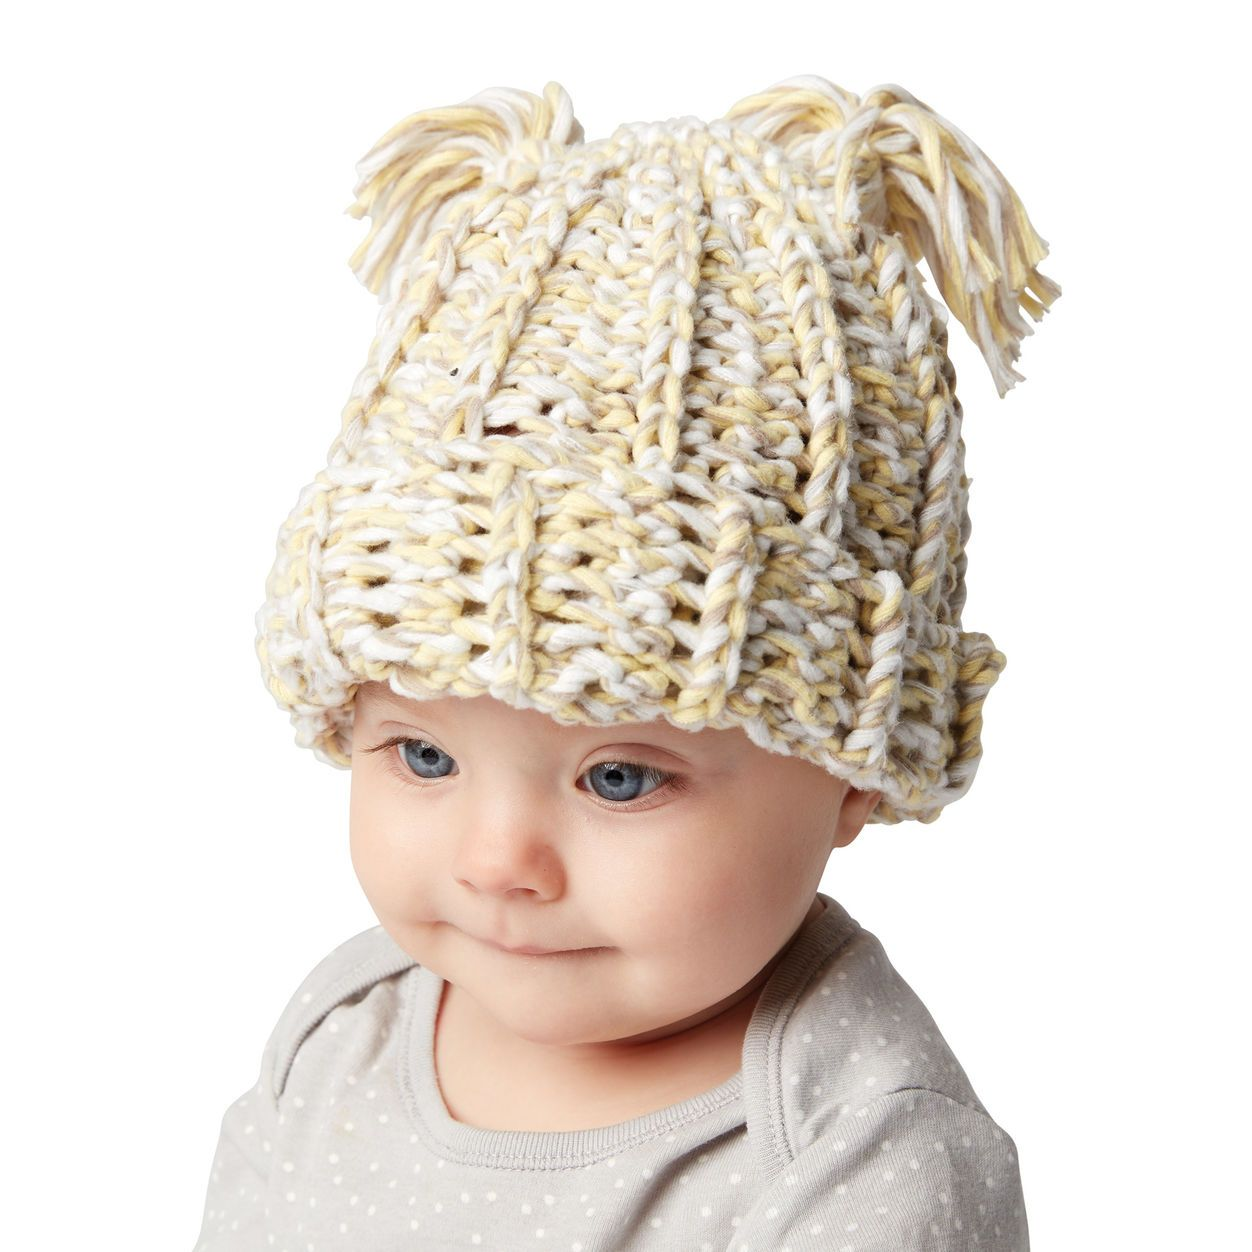 Bernat Crochet Baby Hat | Baby shower gifts and ideas | Pinterest ...